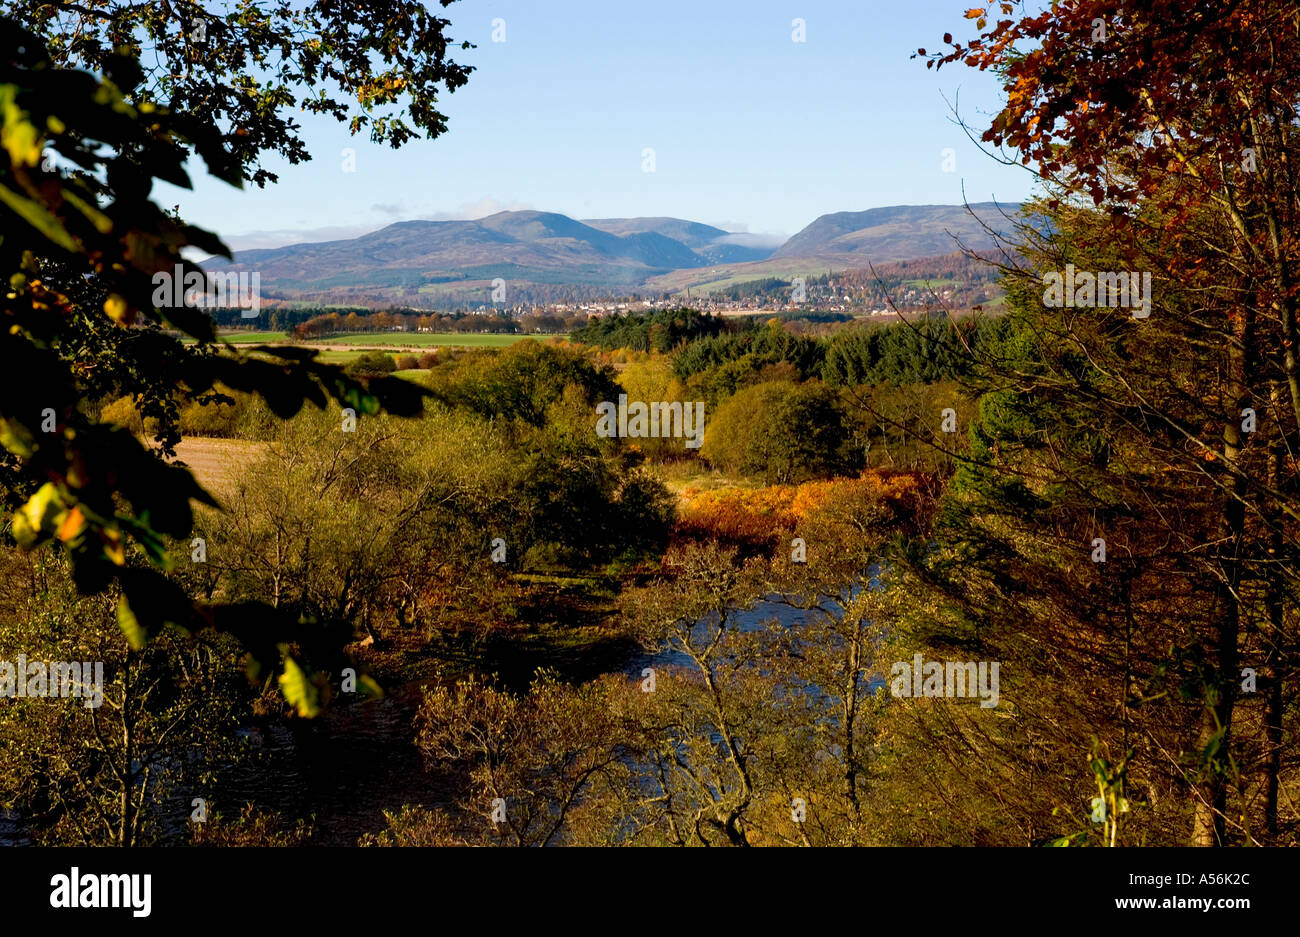 View of the Earn Valley and Crieff in autumn, Scotland - Stock Image